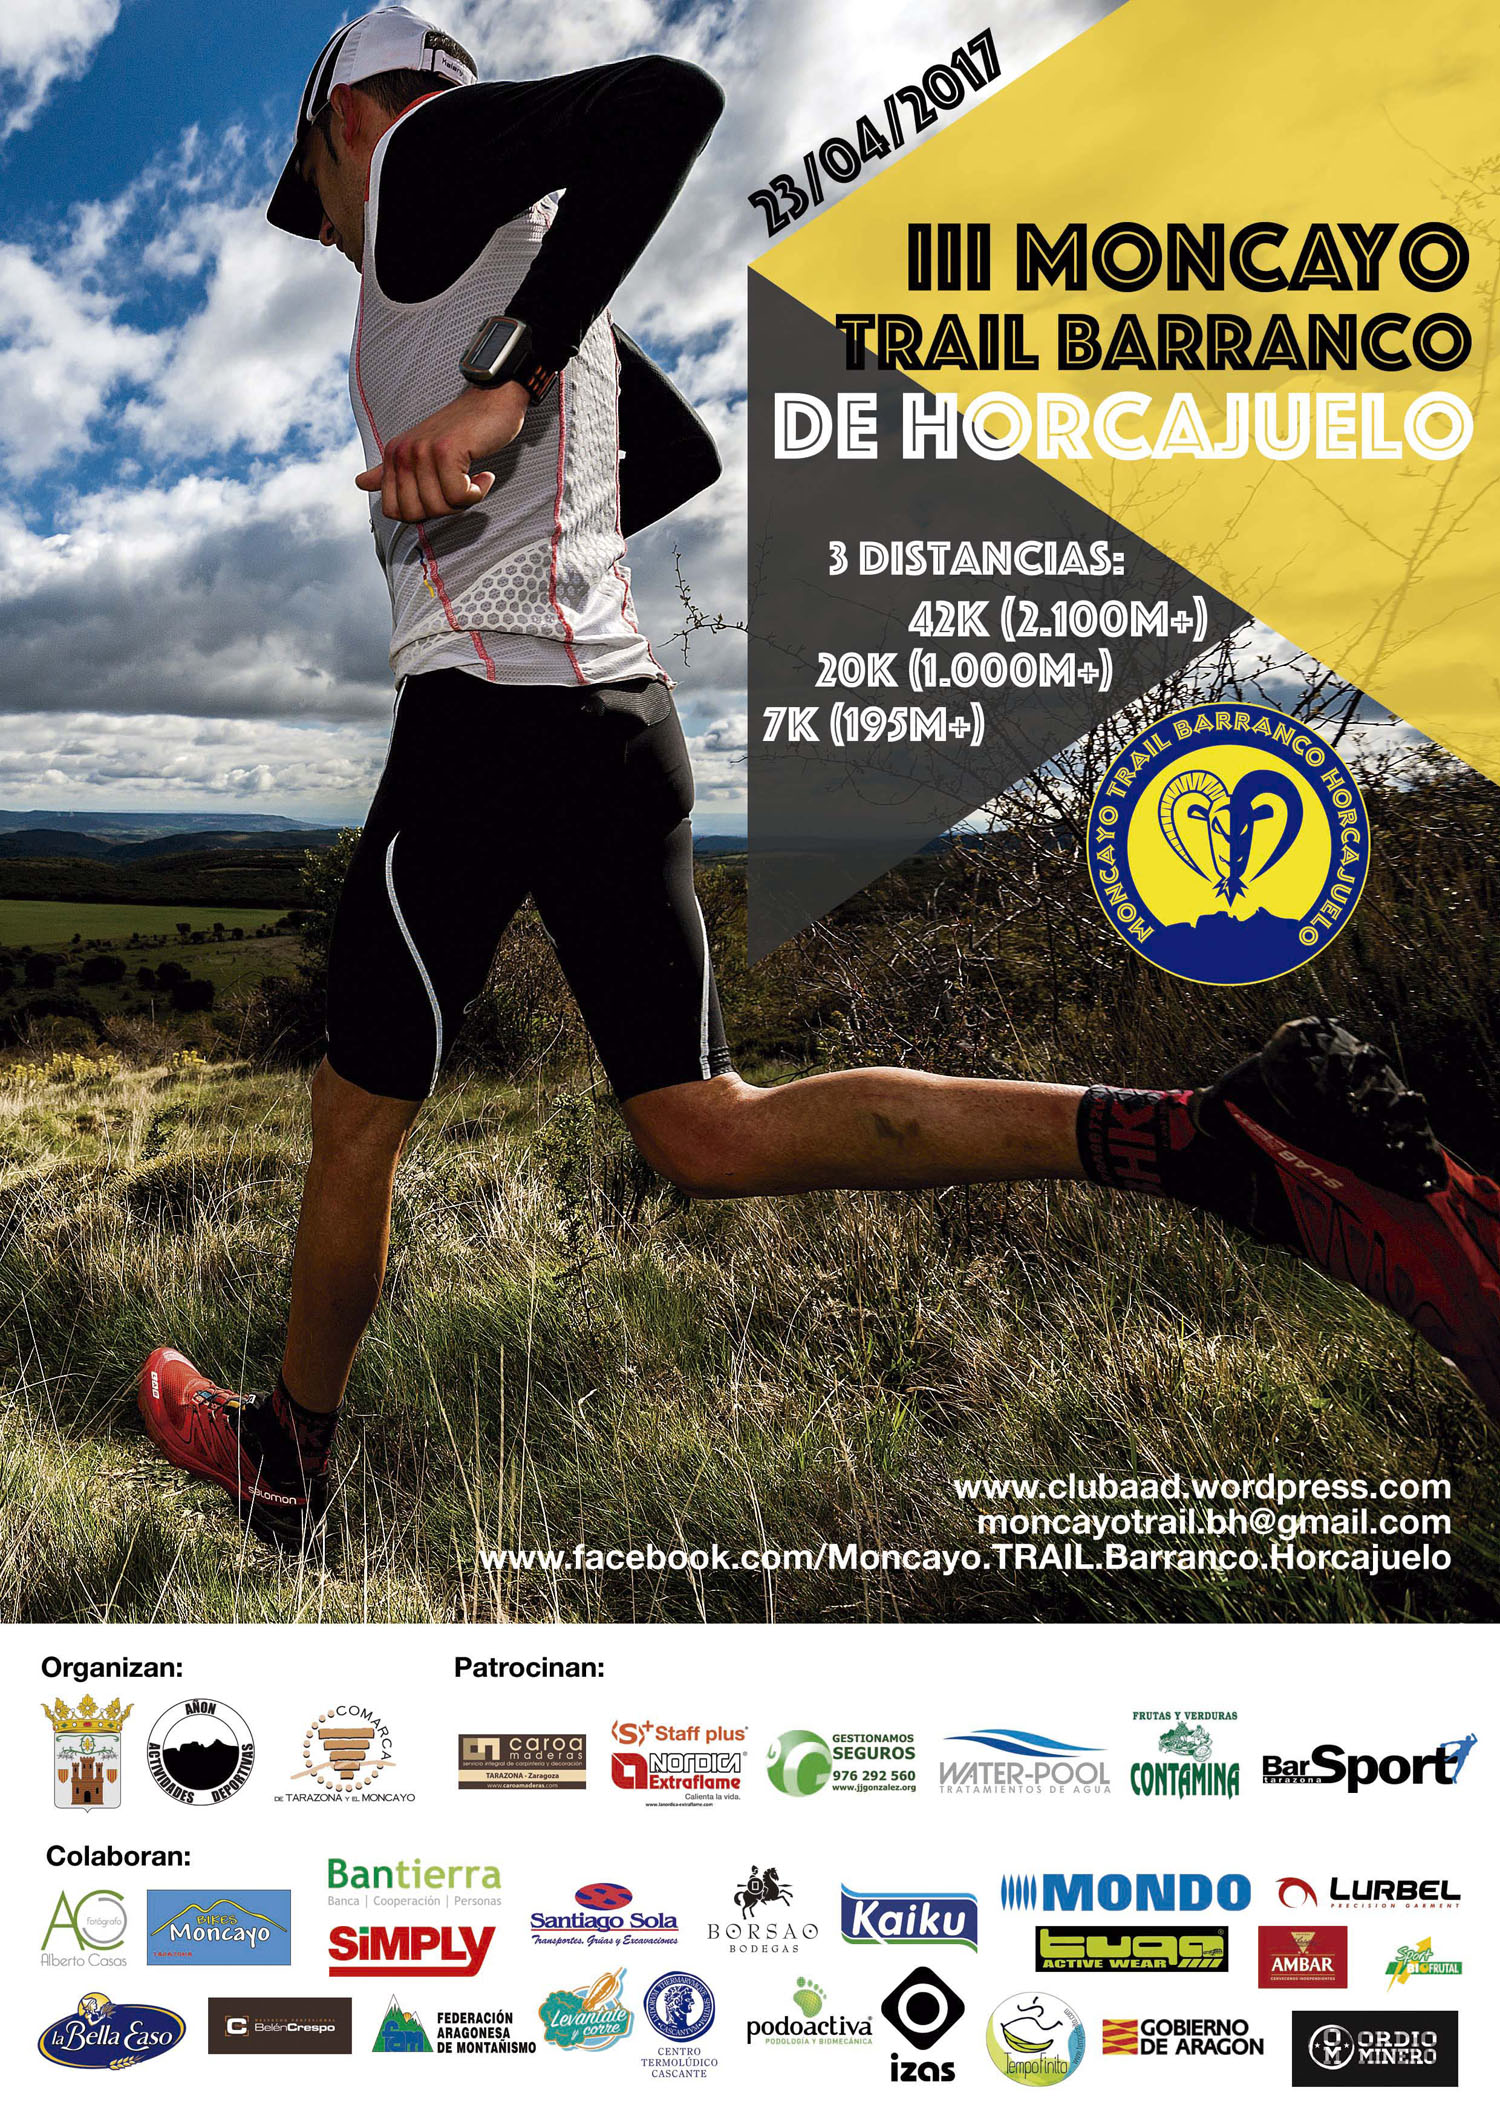 2017 trailbarrancohorcajuelo cartel